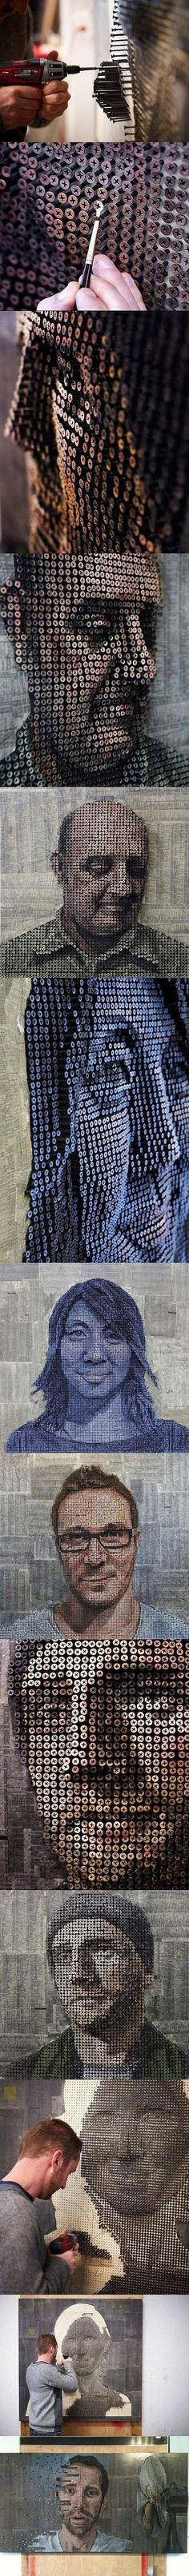 3-dimensional portraits